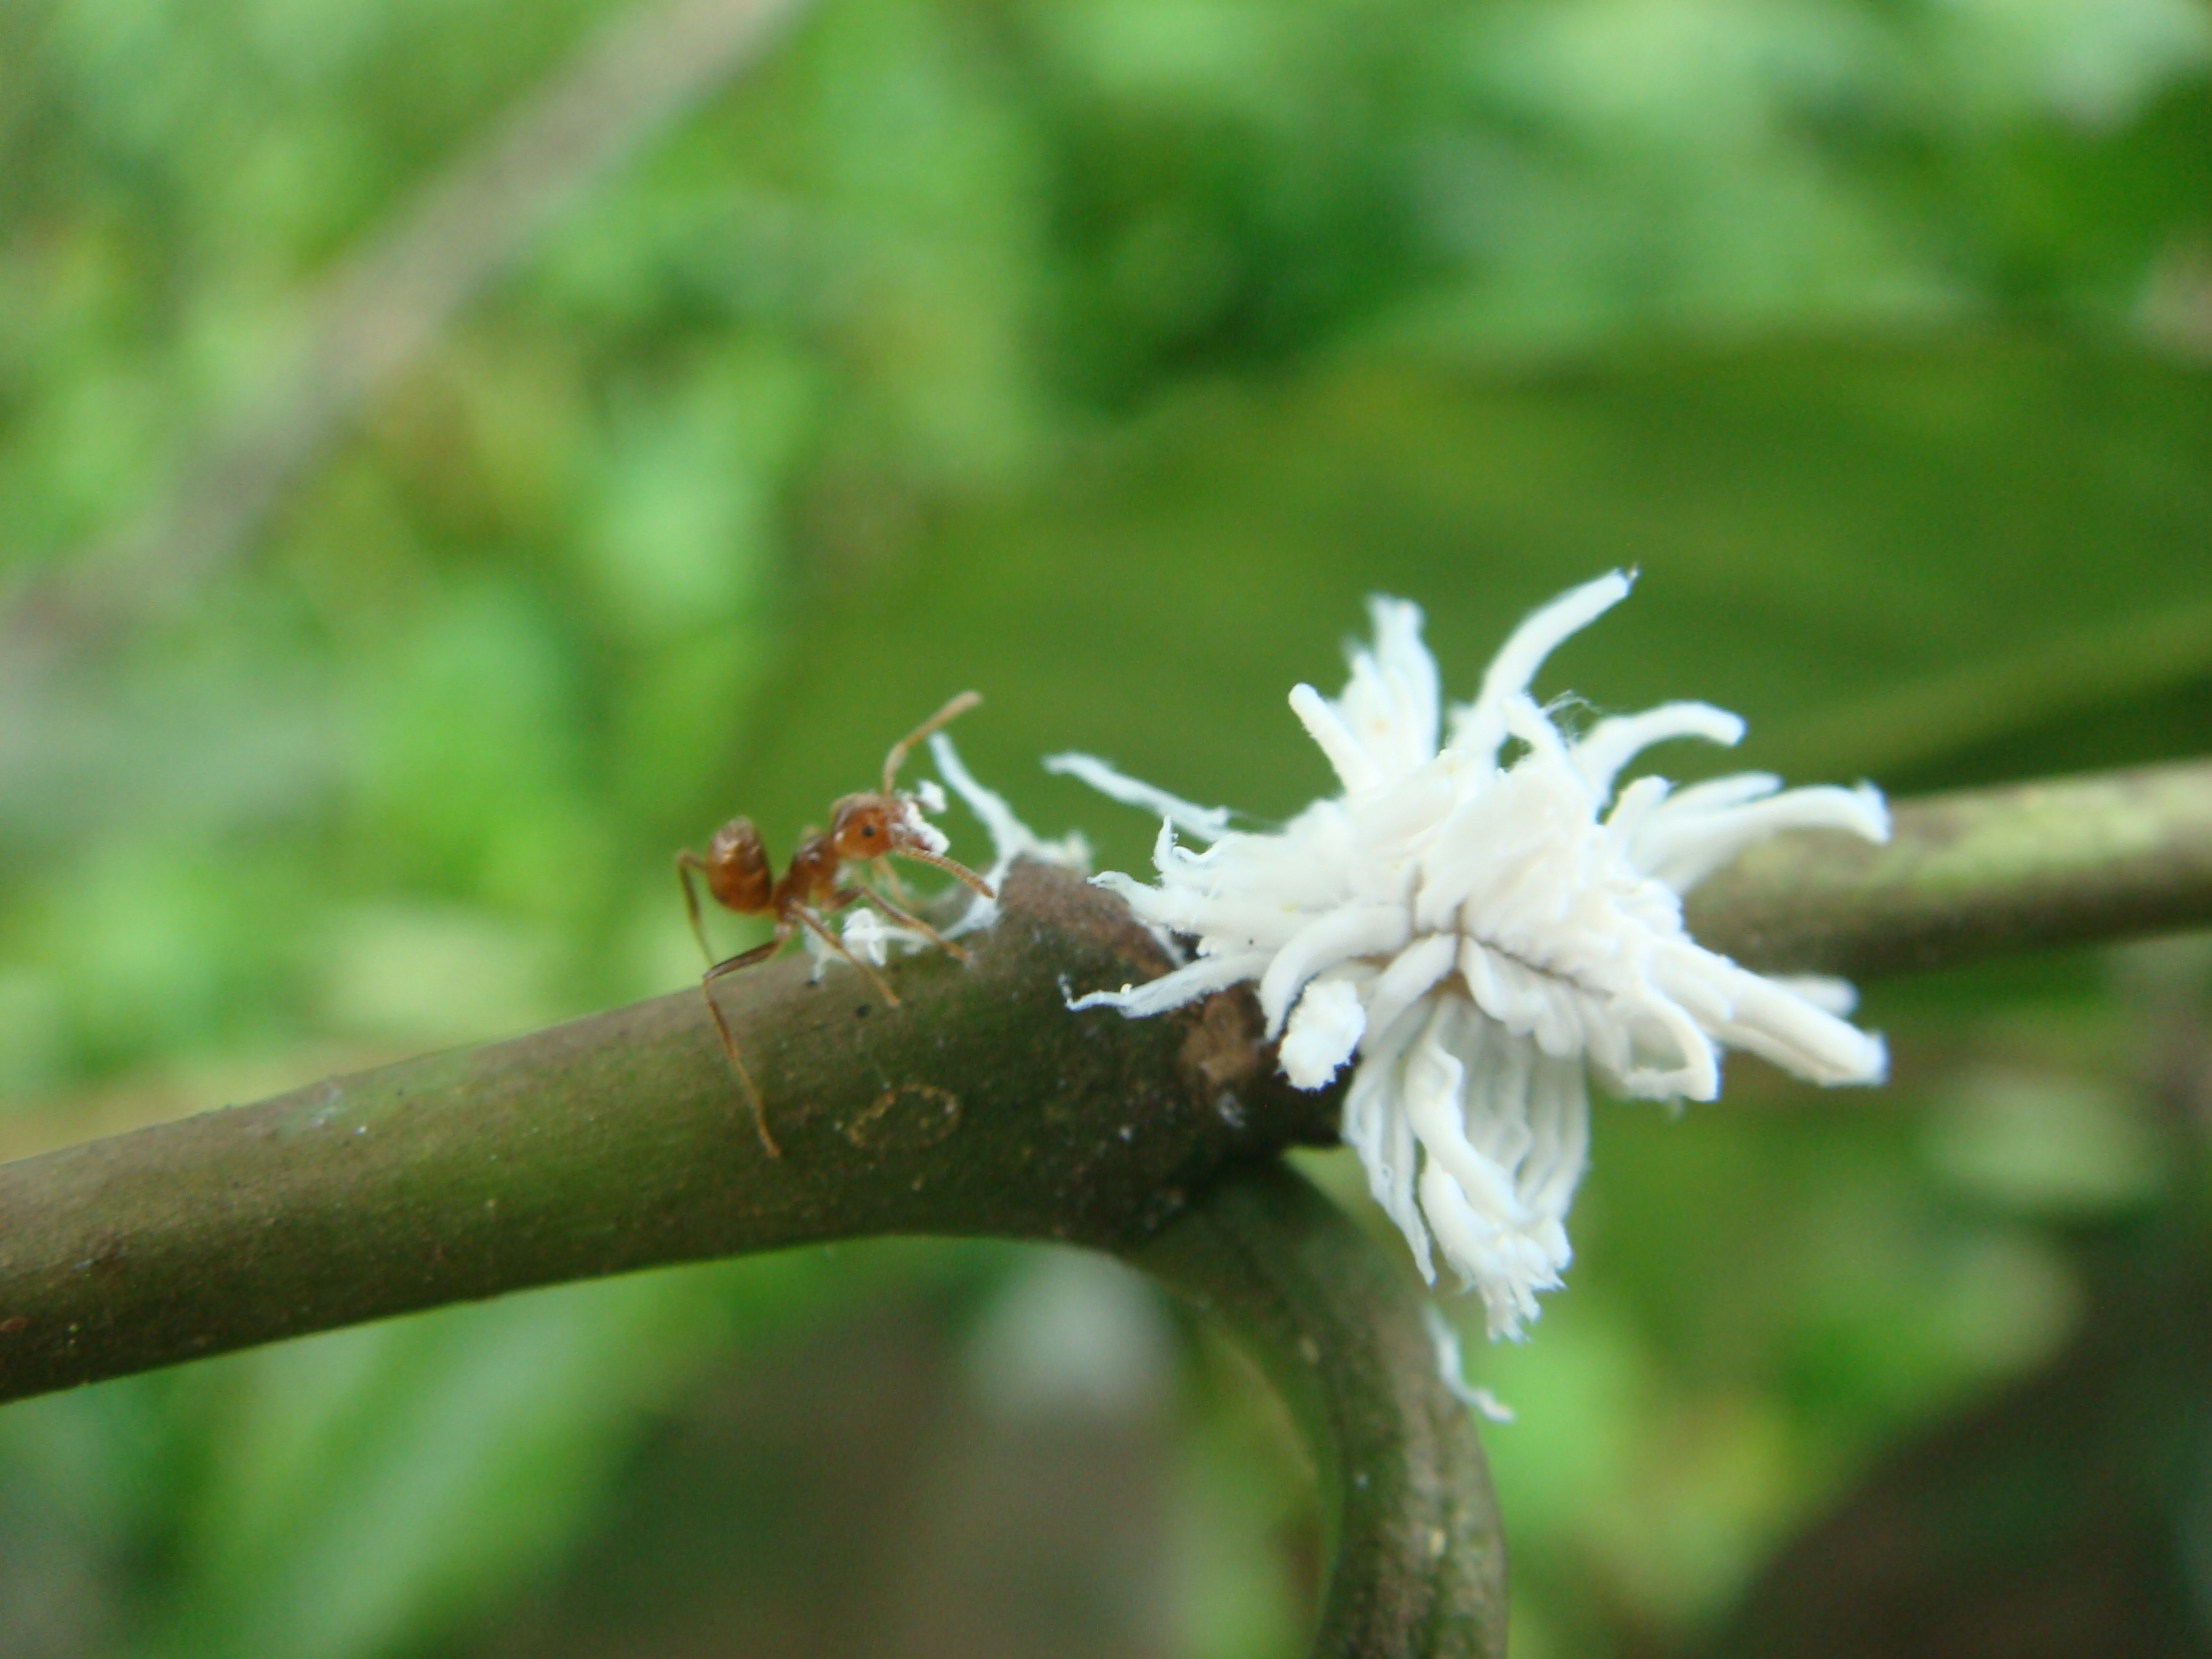 An Azteca ant attacking the larvae of a lady beetle on a coffee plant in Mexico. Lady beetle larvae are covered with waxy white filaments that protect them from ant attacks. Photo by Ivette Perfecto